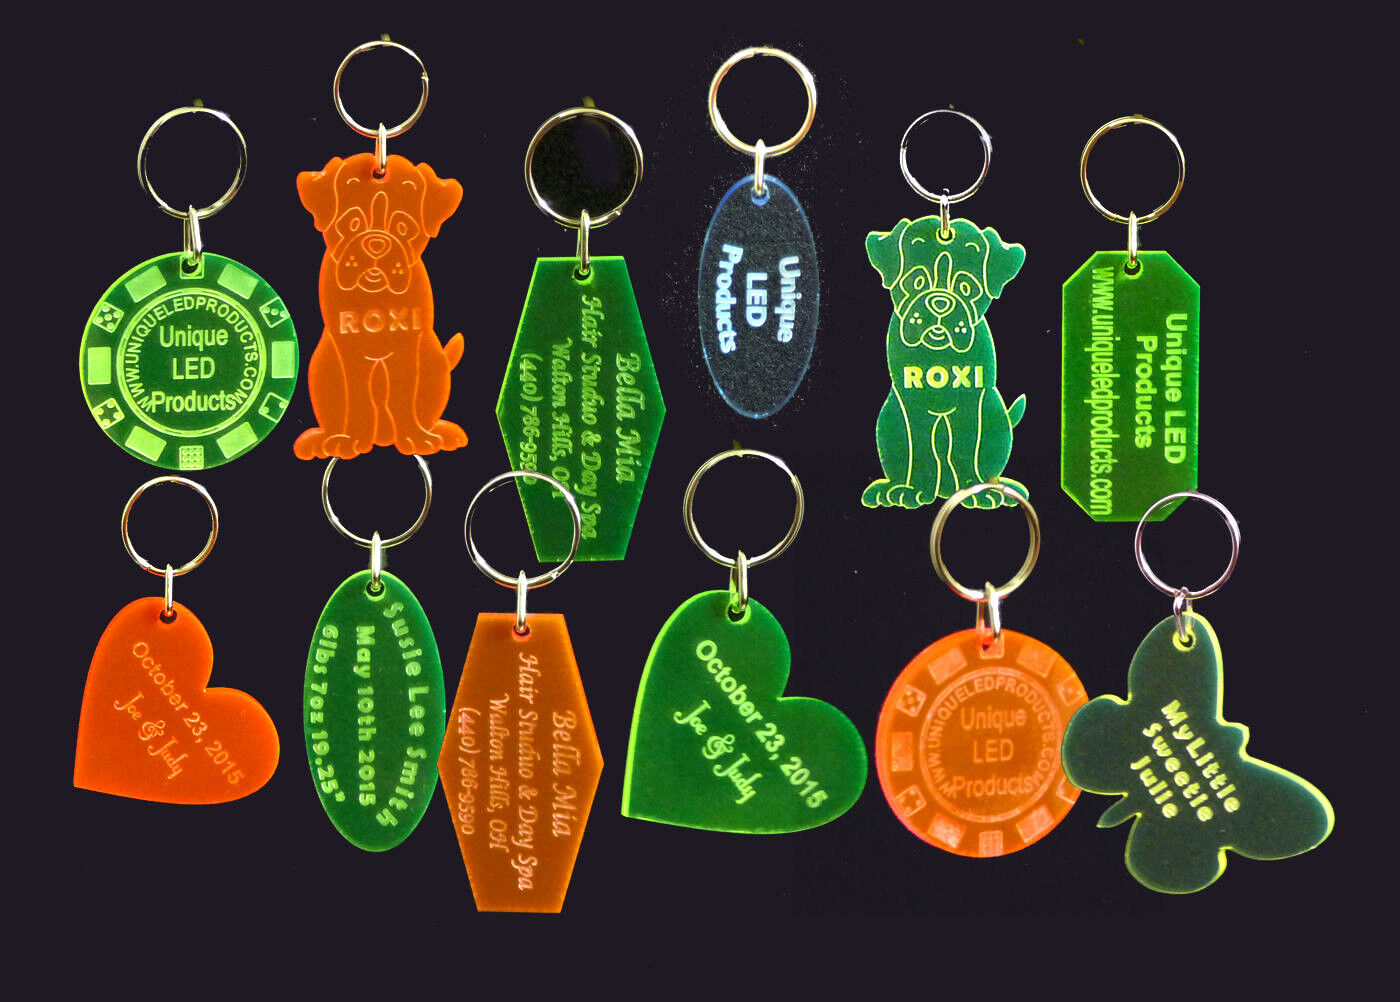 Qty 25 Personalized Keychains, Key Tags, Key Rings